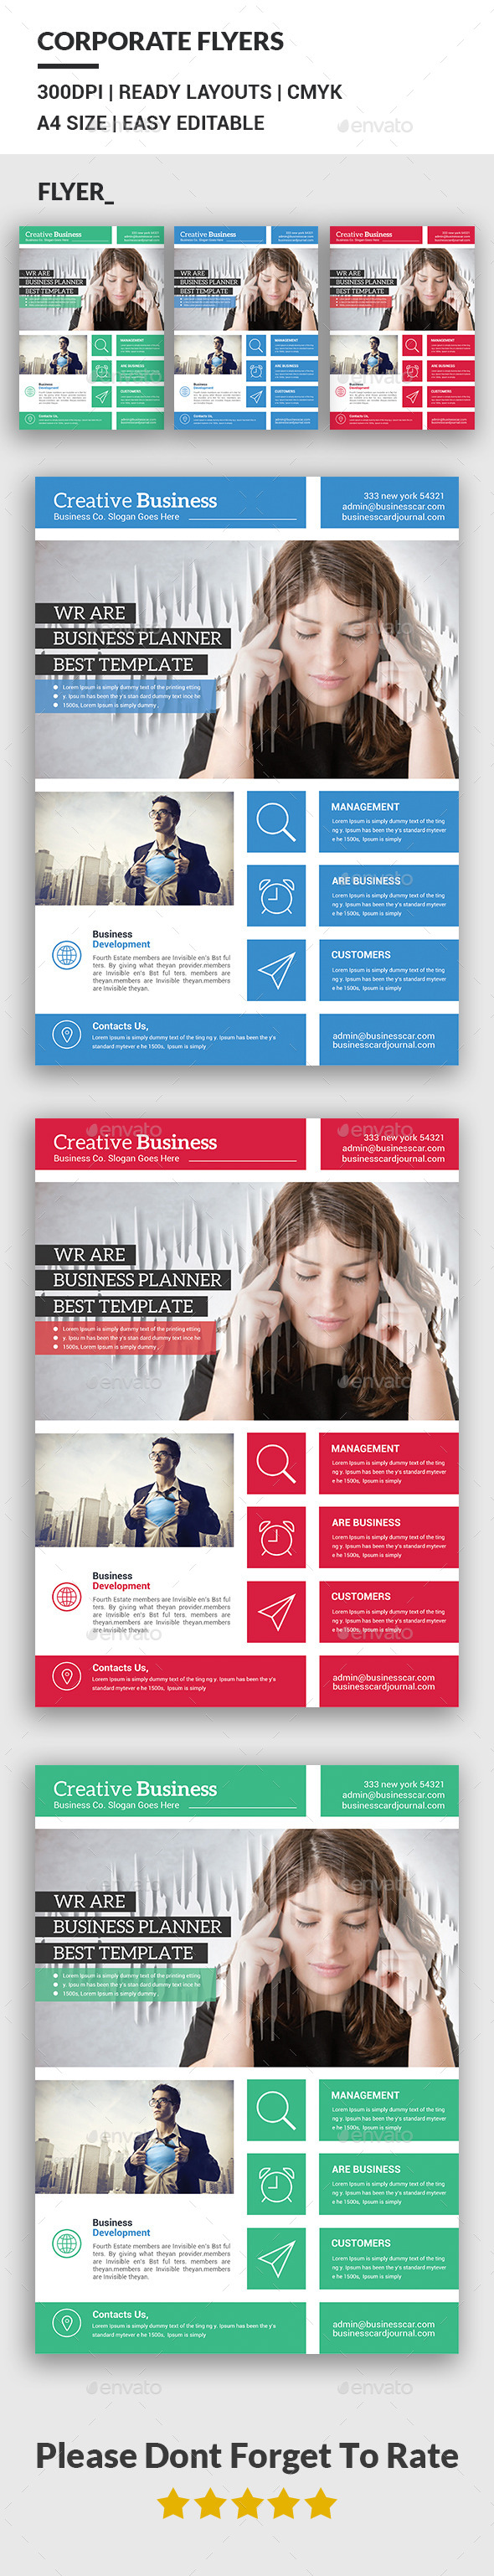 Creative Business Flyer Templates - Corporate Flyers